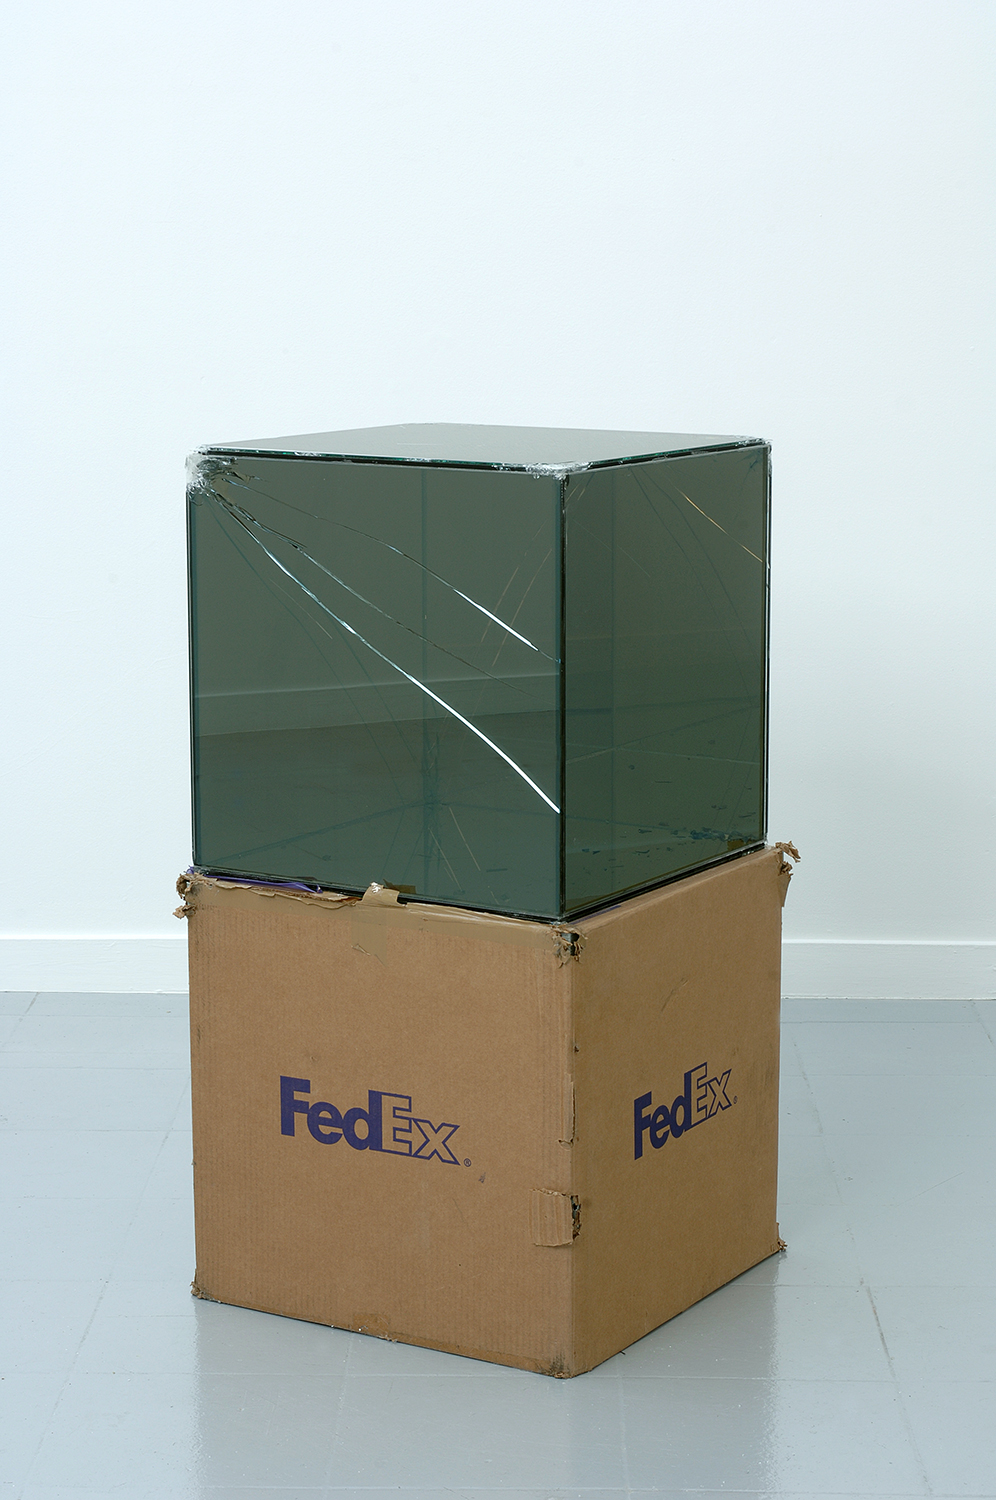 FedEx® Large Kraft Box  © 2005 FEDEX 330508 REV 10/05 SSCC, International Priority, Los Angeles–Brussels trk#865282057953, October 27–30, 2008, International Priority, Brussels–Los Angeles trk#866071746385, December 8–9, 2008    2008–   Laminated mirropane, FedEx shipping box, accrued FedEx shipping and tracking labels, silicone, metal, and tape  20 x 20 x 20 inches   FedEx Glass Works, 2007–